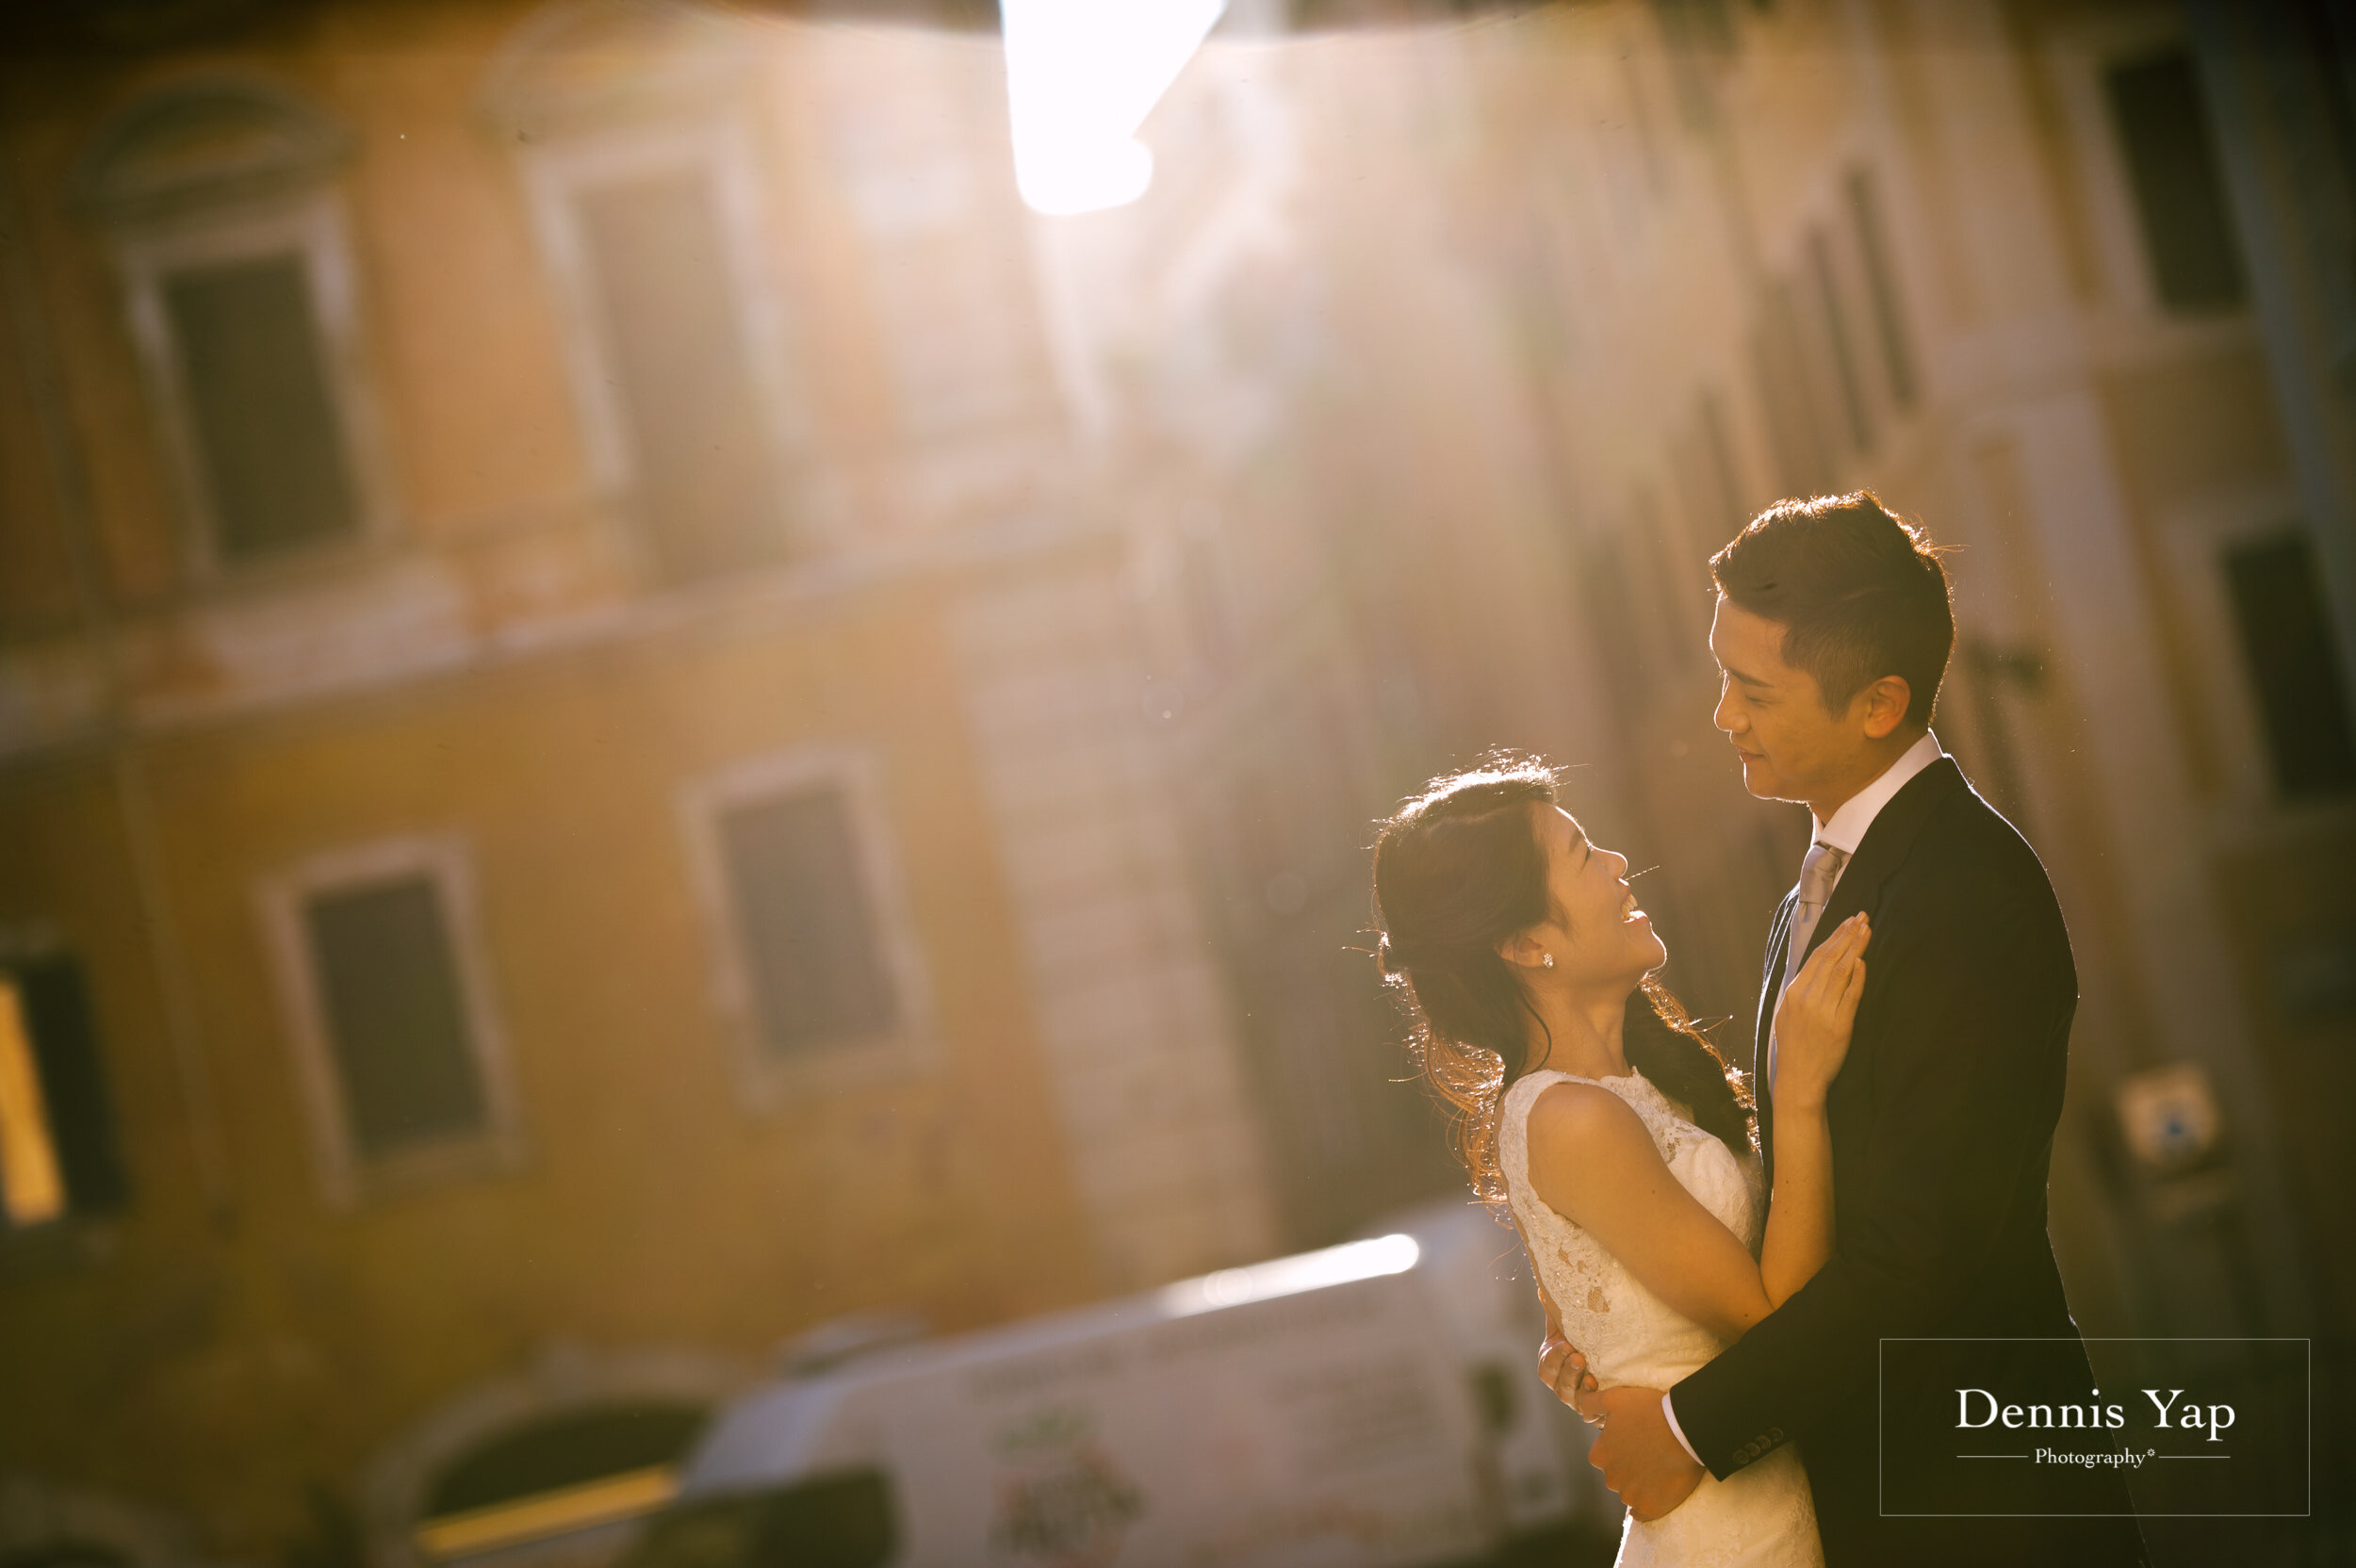 alex chloe pre wedding rome italy dennis yap photography overseas portrait classic beloved-115.jpg